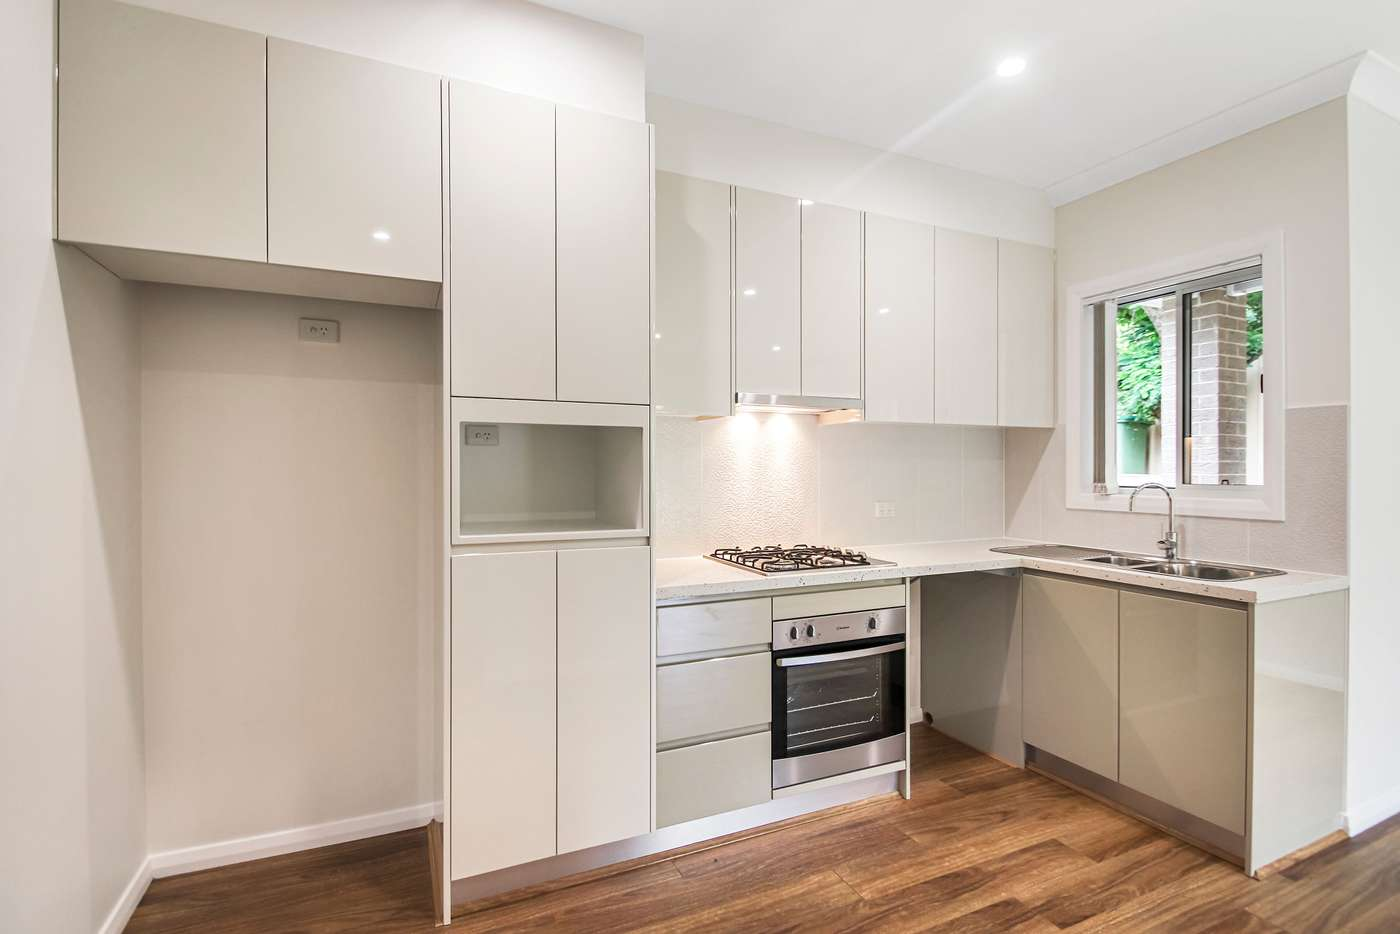 Main view of Homely other listing, 21A Hillcrest Avenue, Gladesville NSW 2111